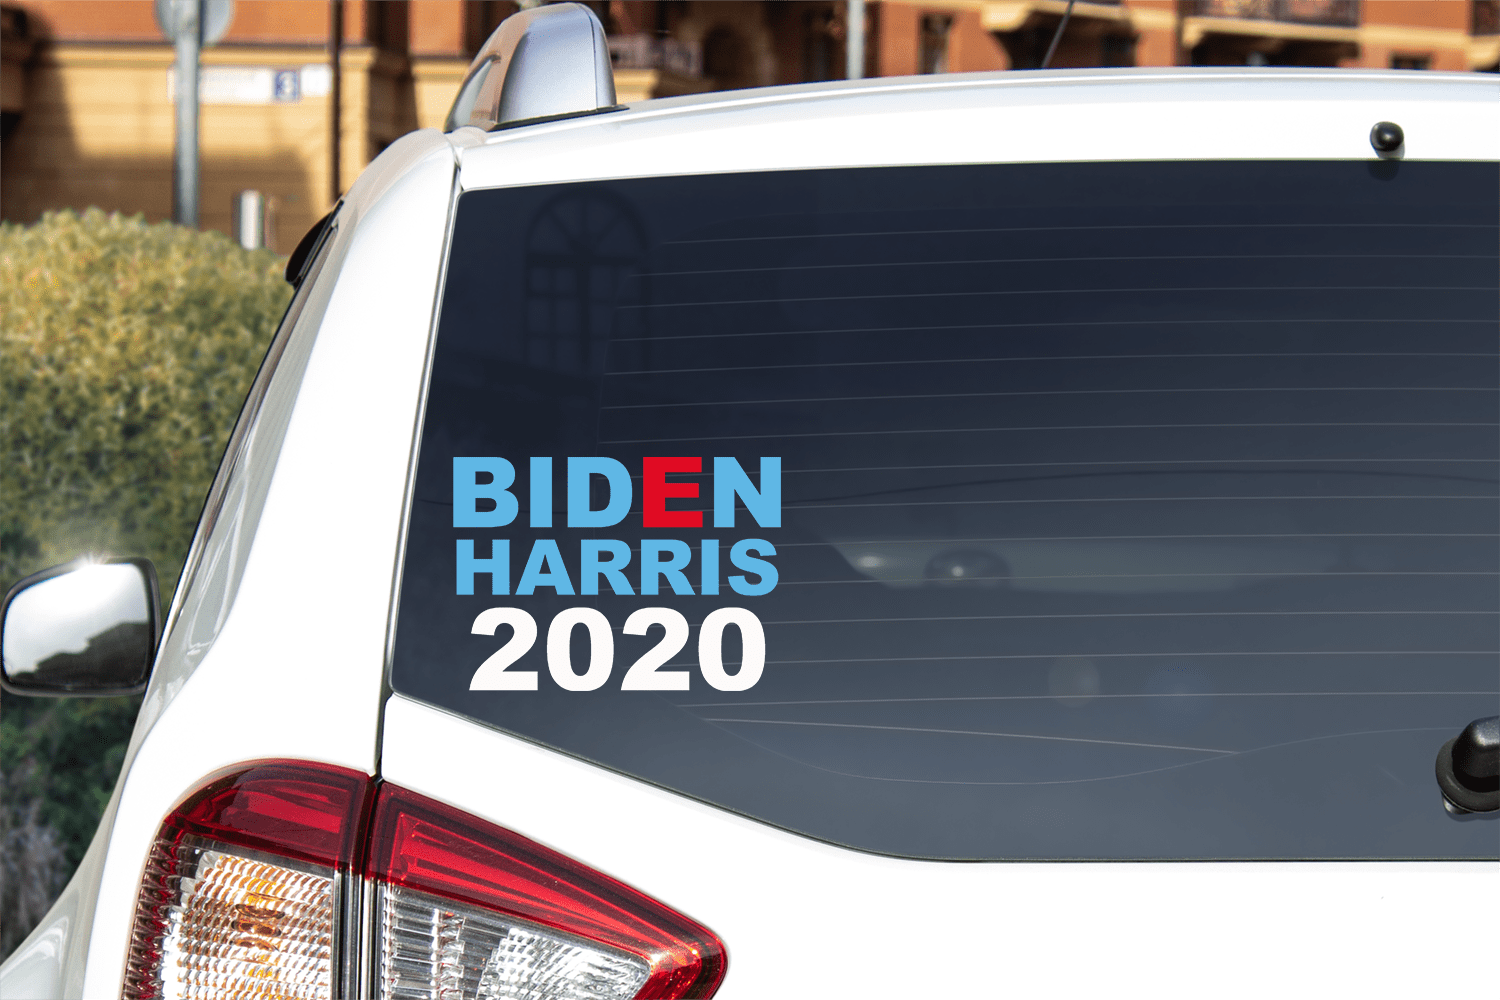 Joe Biden Kamala Harris 2020 Vinyl Car Decal Bumper Sticker Decal/Sticker Buttons For the People